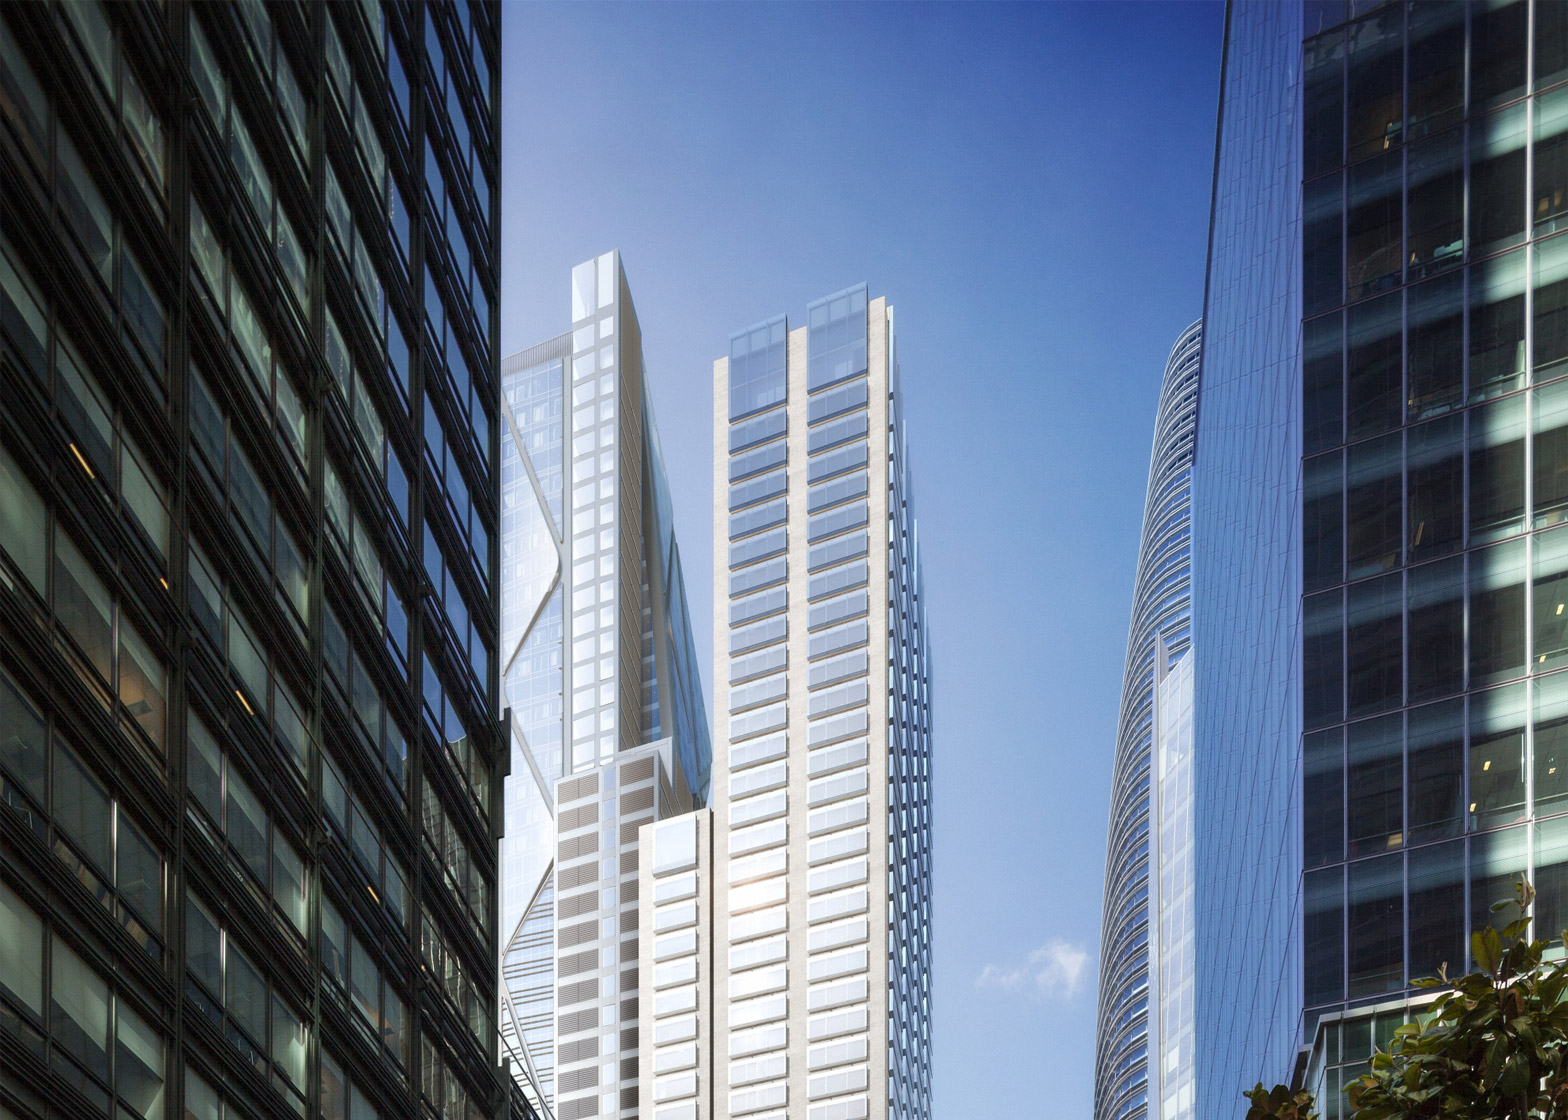 Oceanview development by Foster + Partners